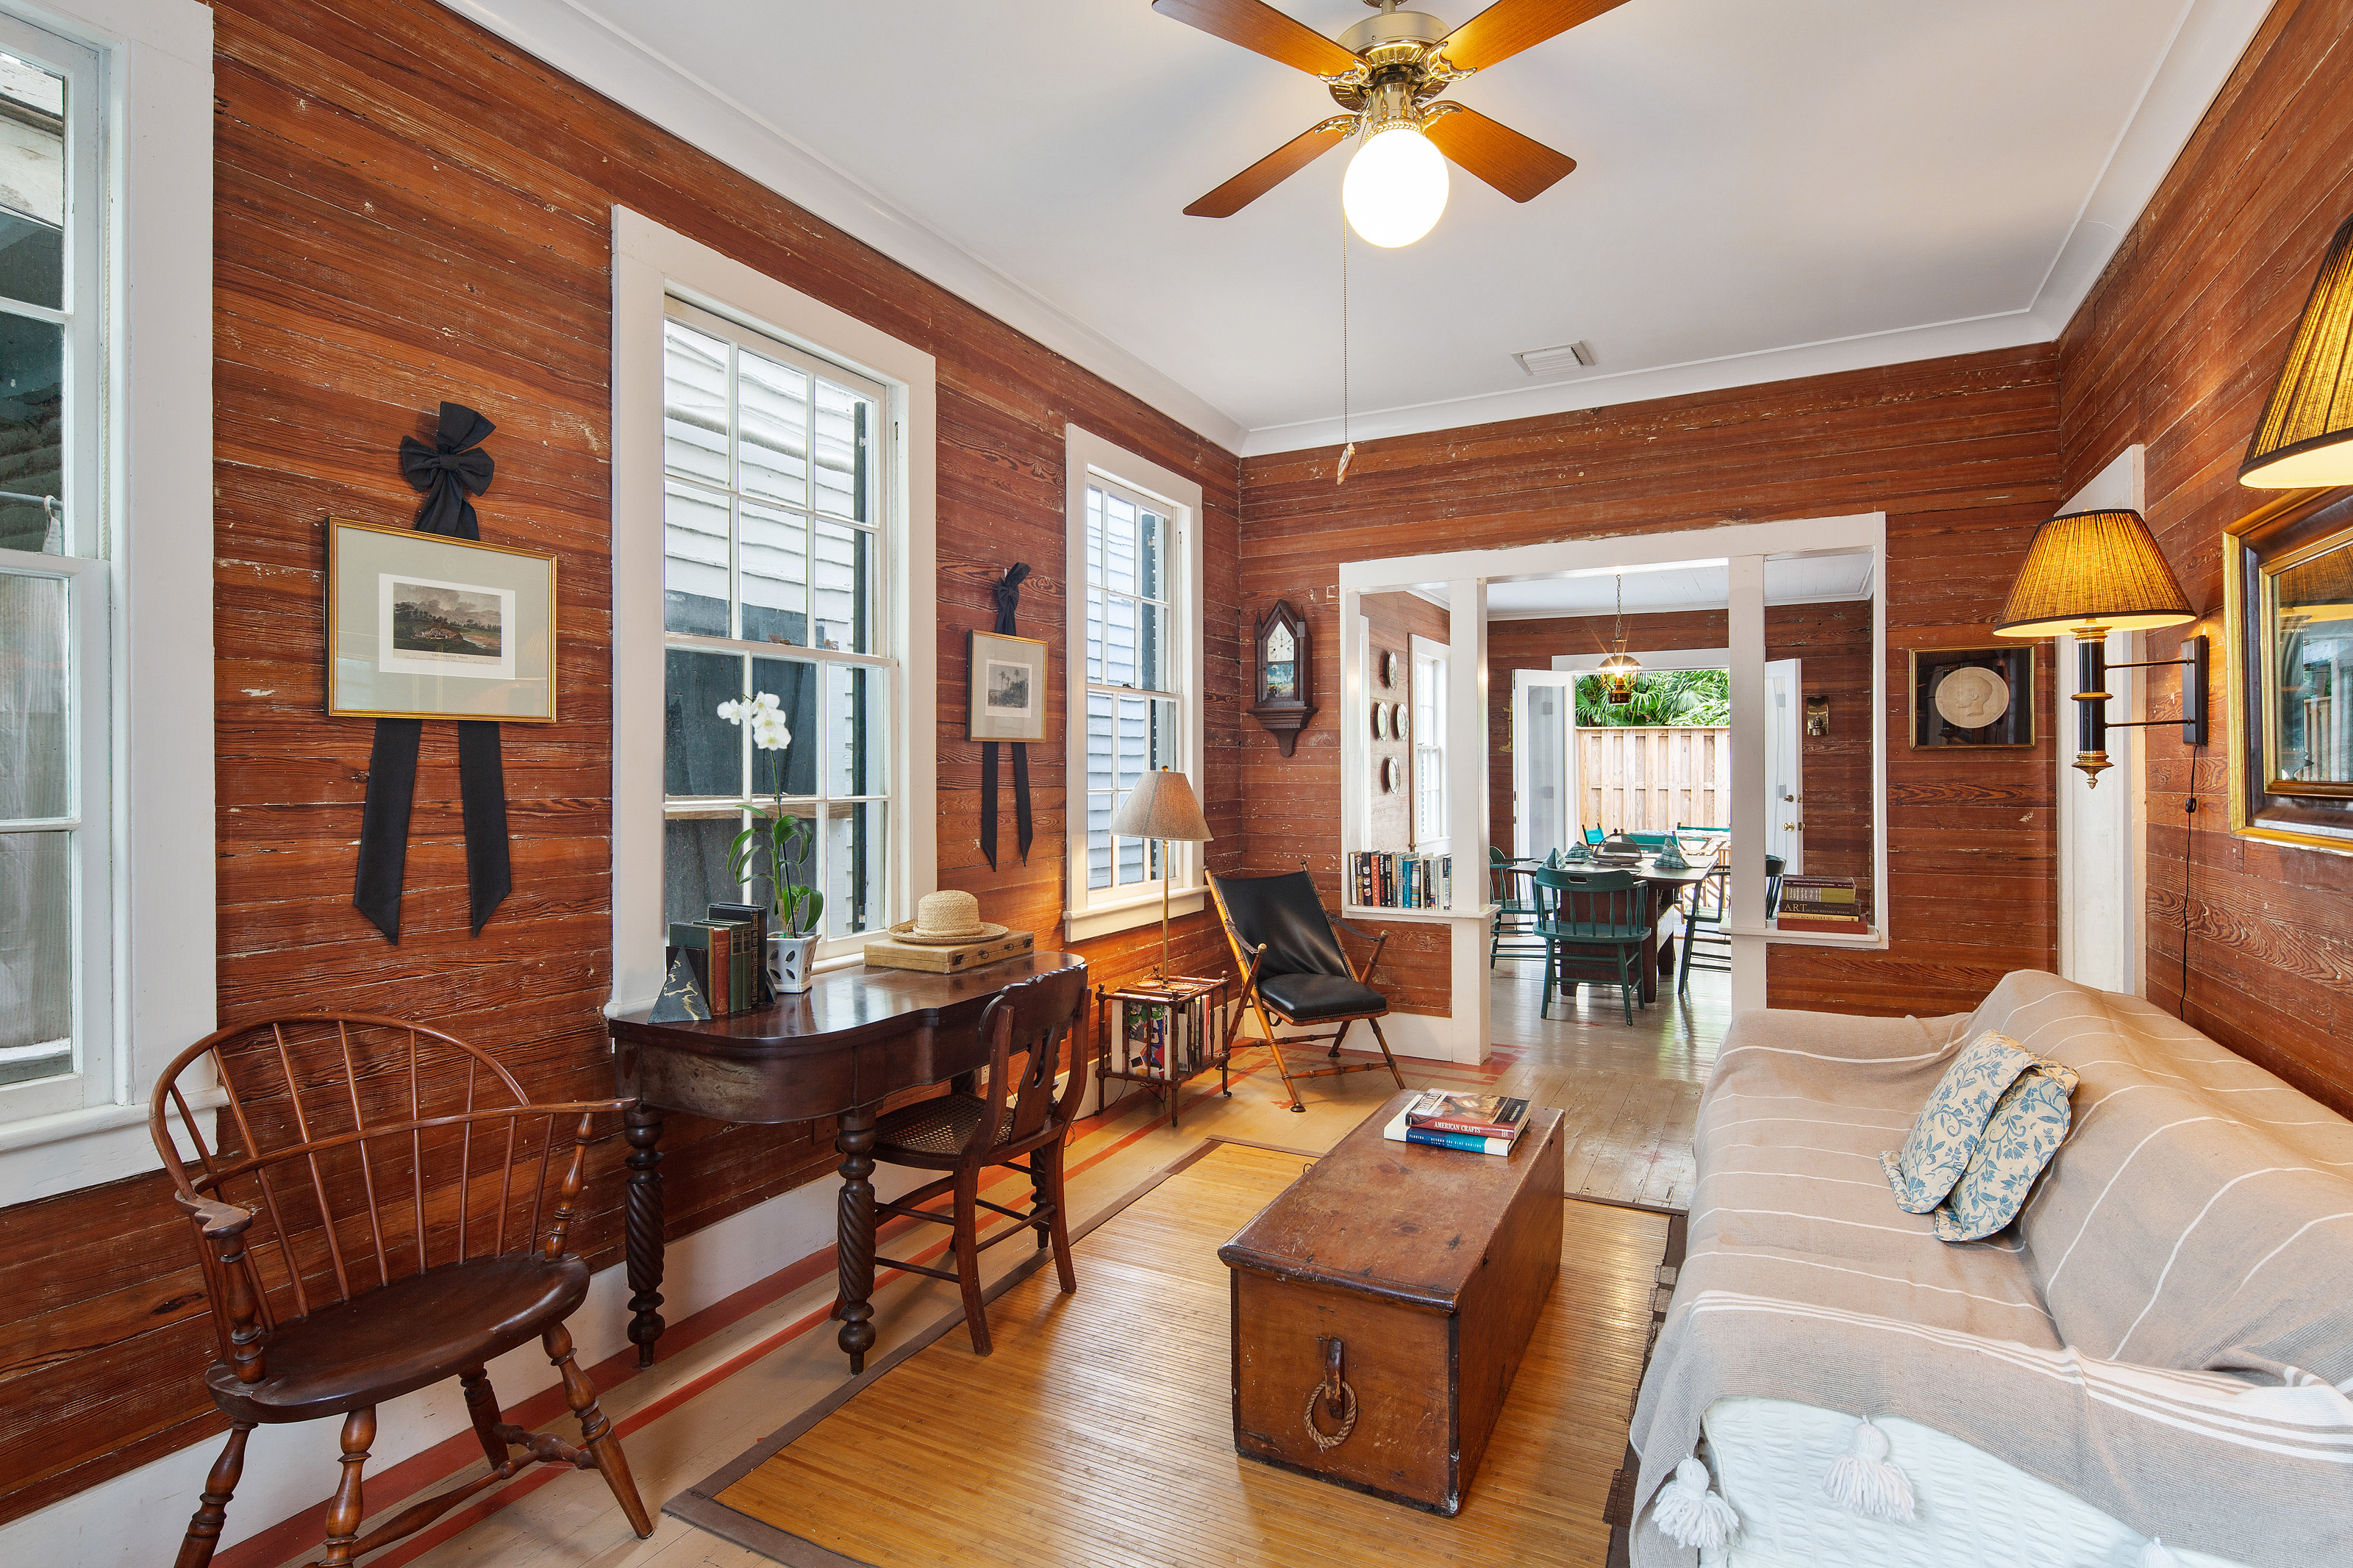 Key West Homes for sale